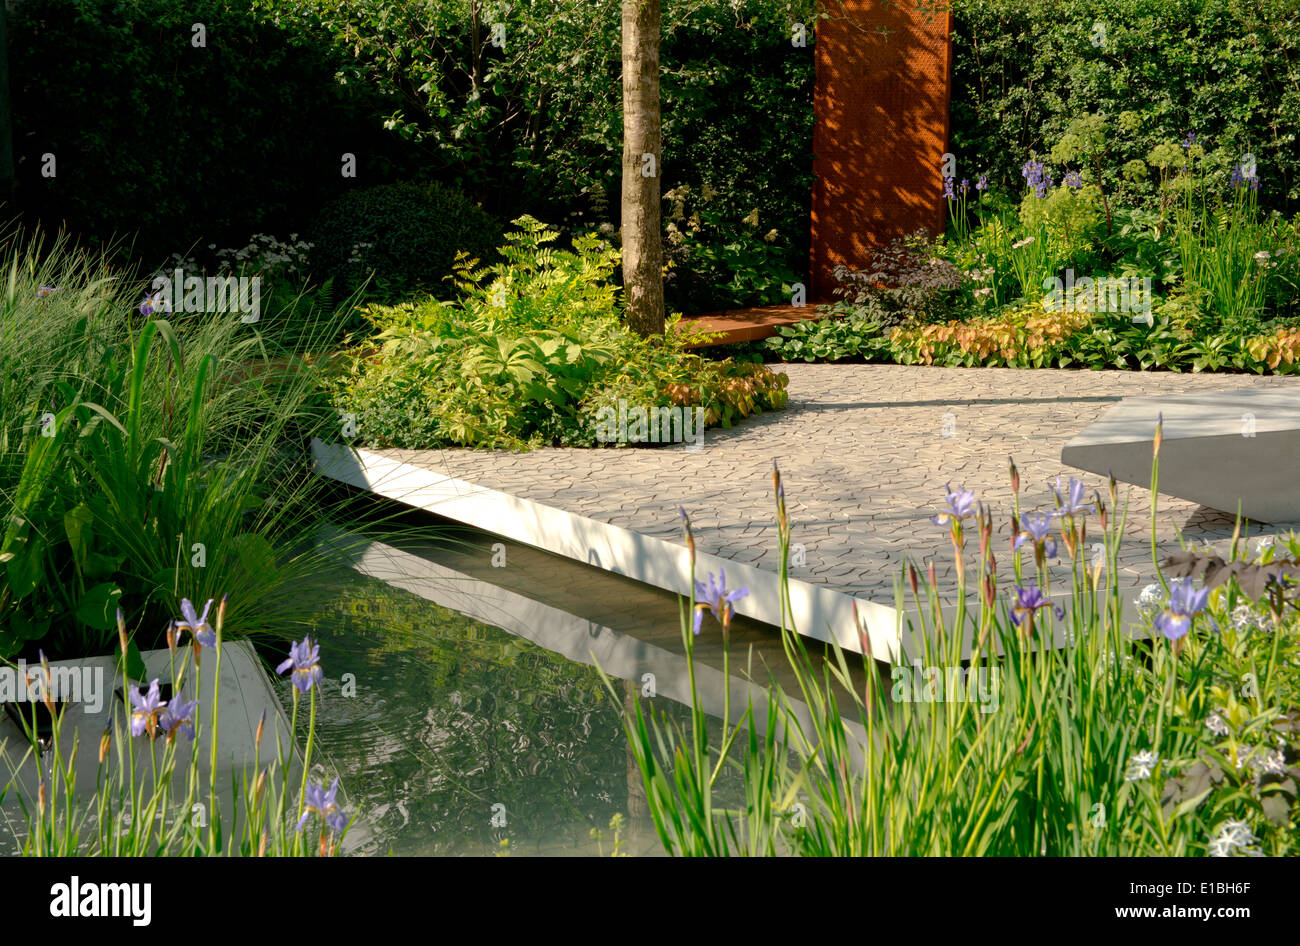 The RBC Waterscape Garden a show garden gold medal winner at the Chelsea Flower Show 2014, designed by Hugo Bugg - Stock Image